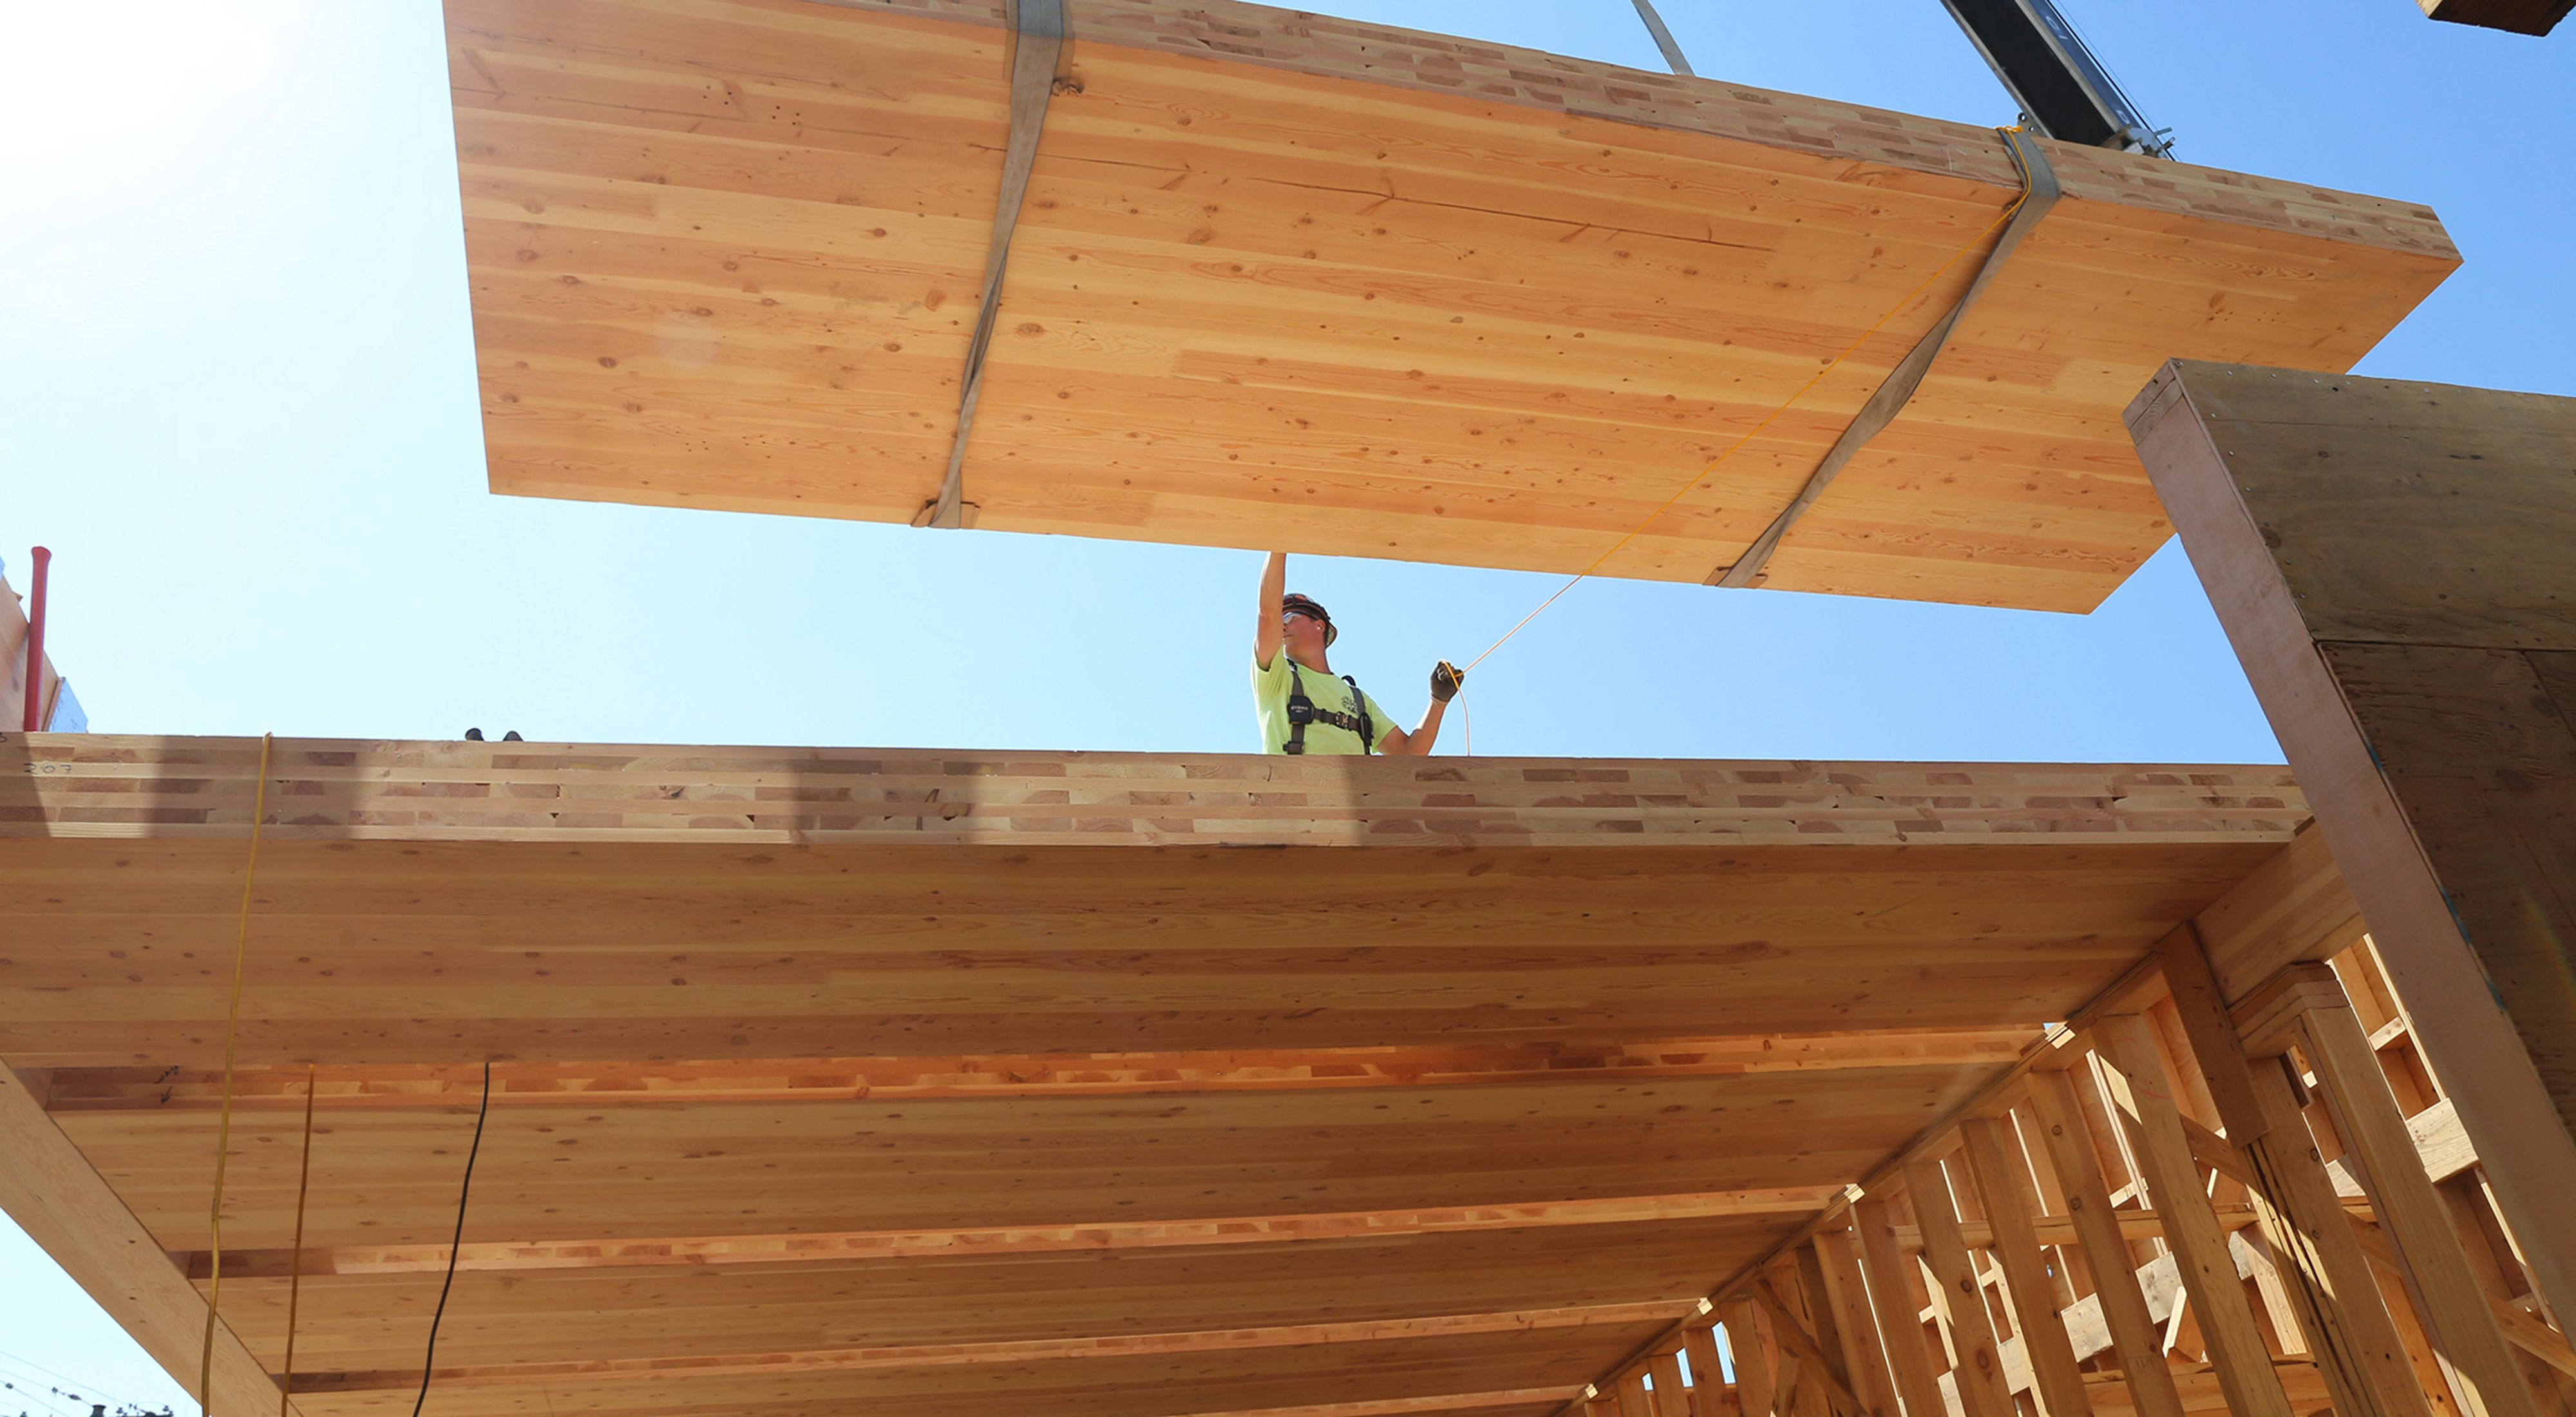 A construction worker helps guide the installation of cross-laminated timber for the Oregon Conservation Center in Portland, Oregon.